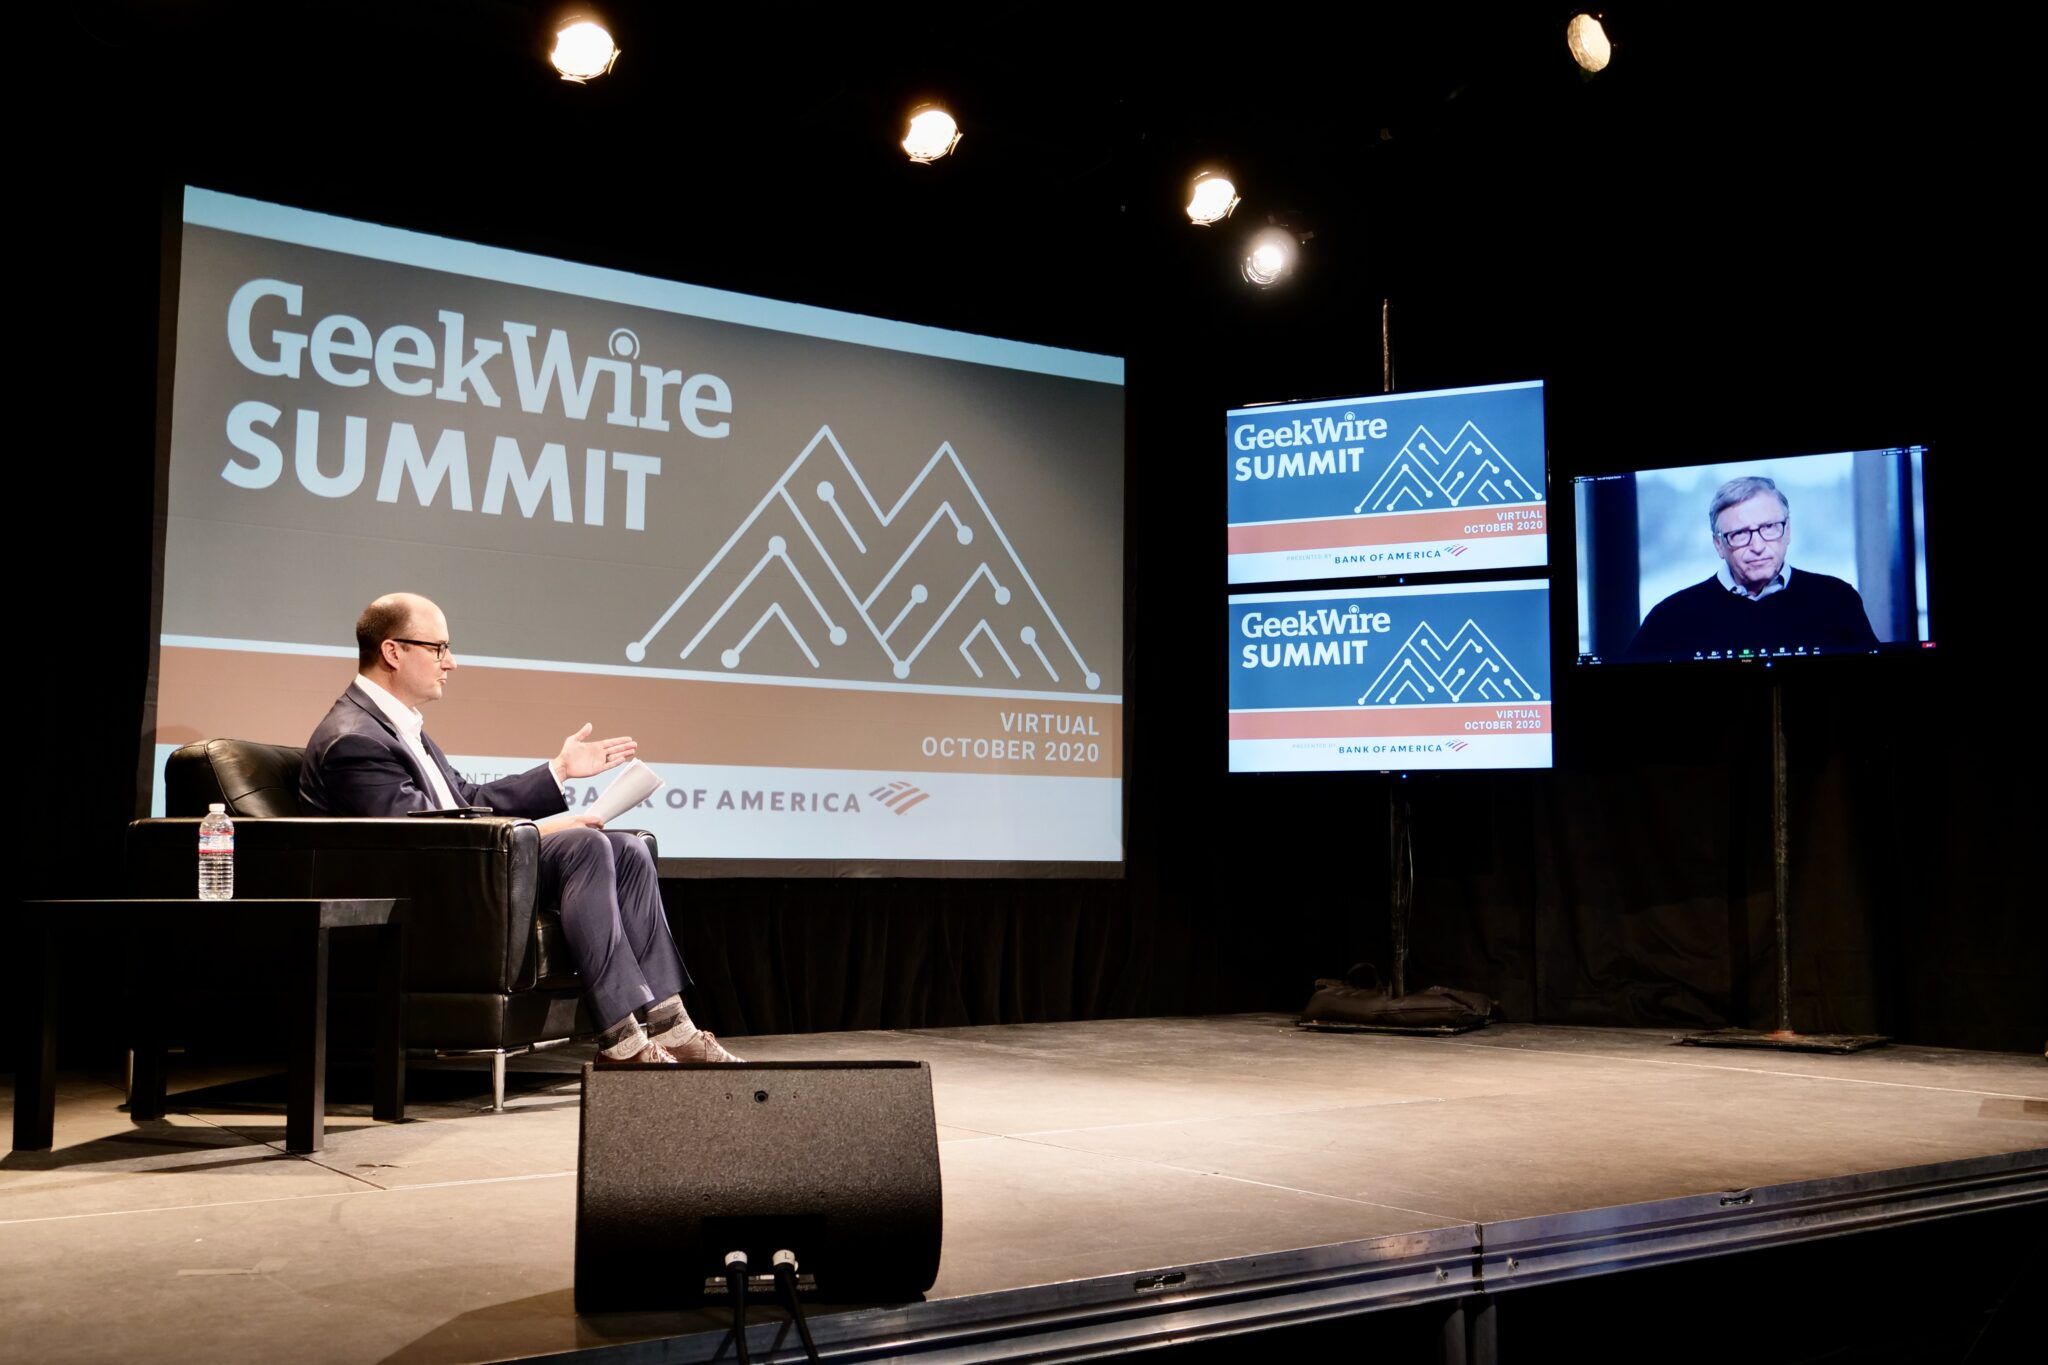 GeekWire Summit: Bill Gates says world can avoid climate 'disaster,' if we learn lesson from pandemic